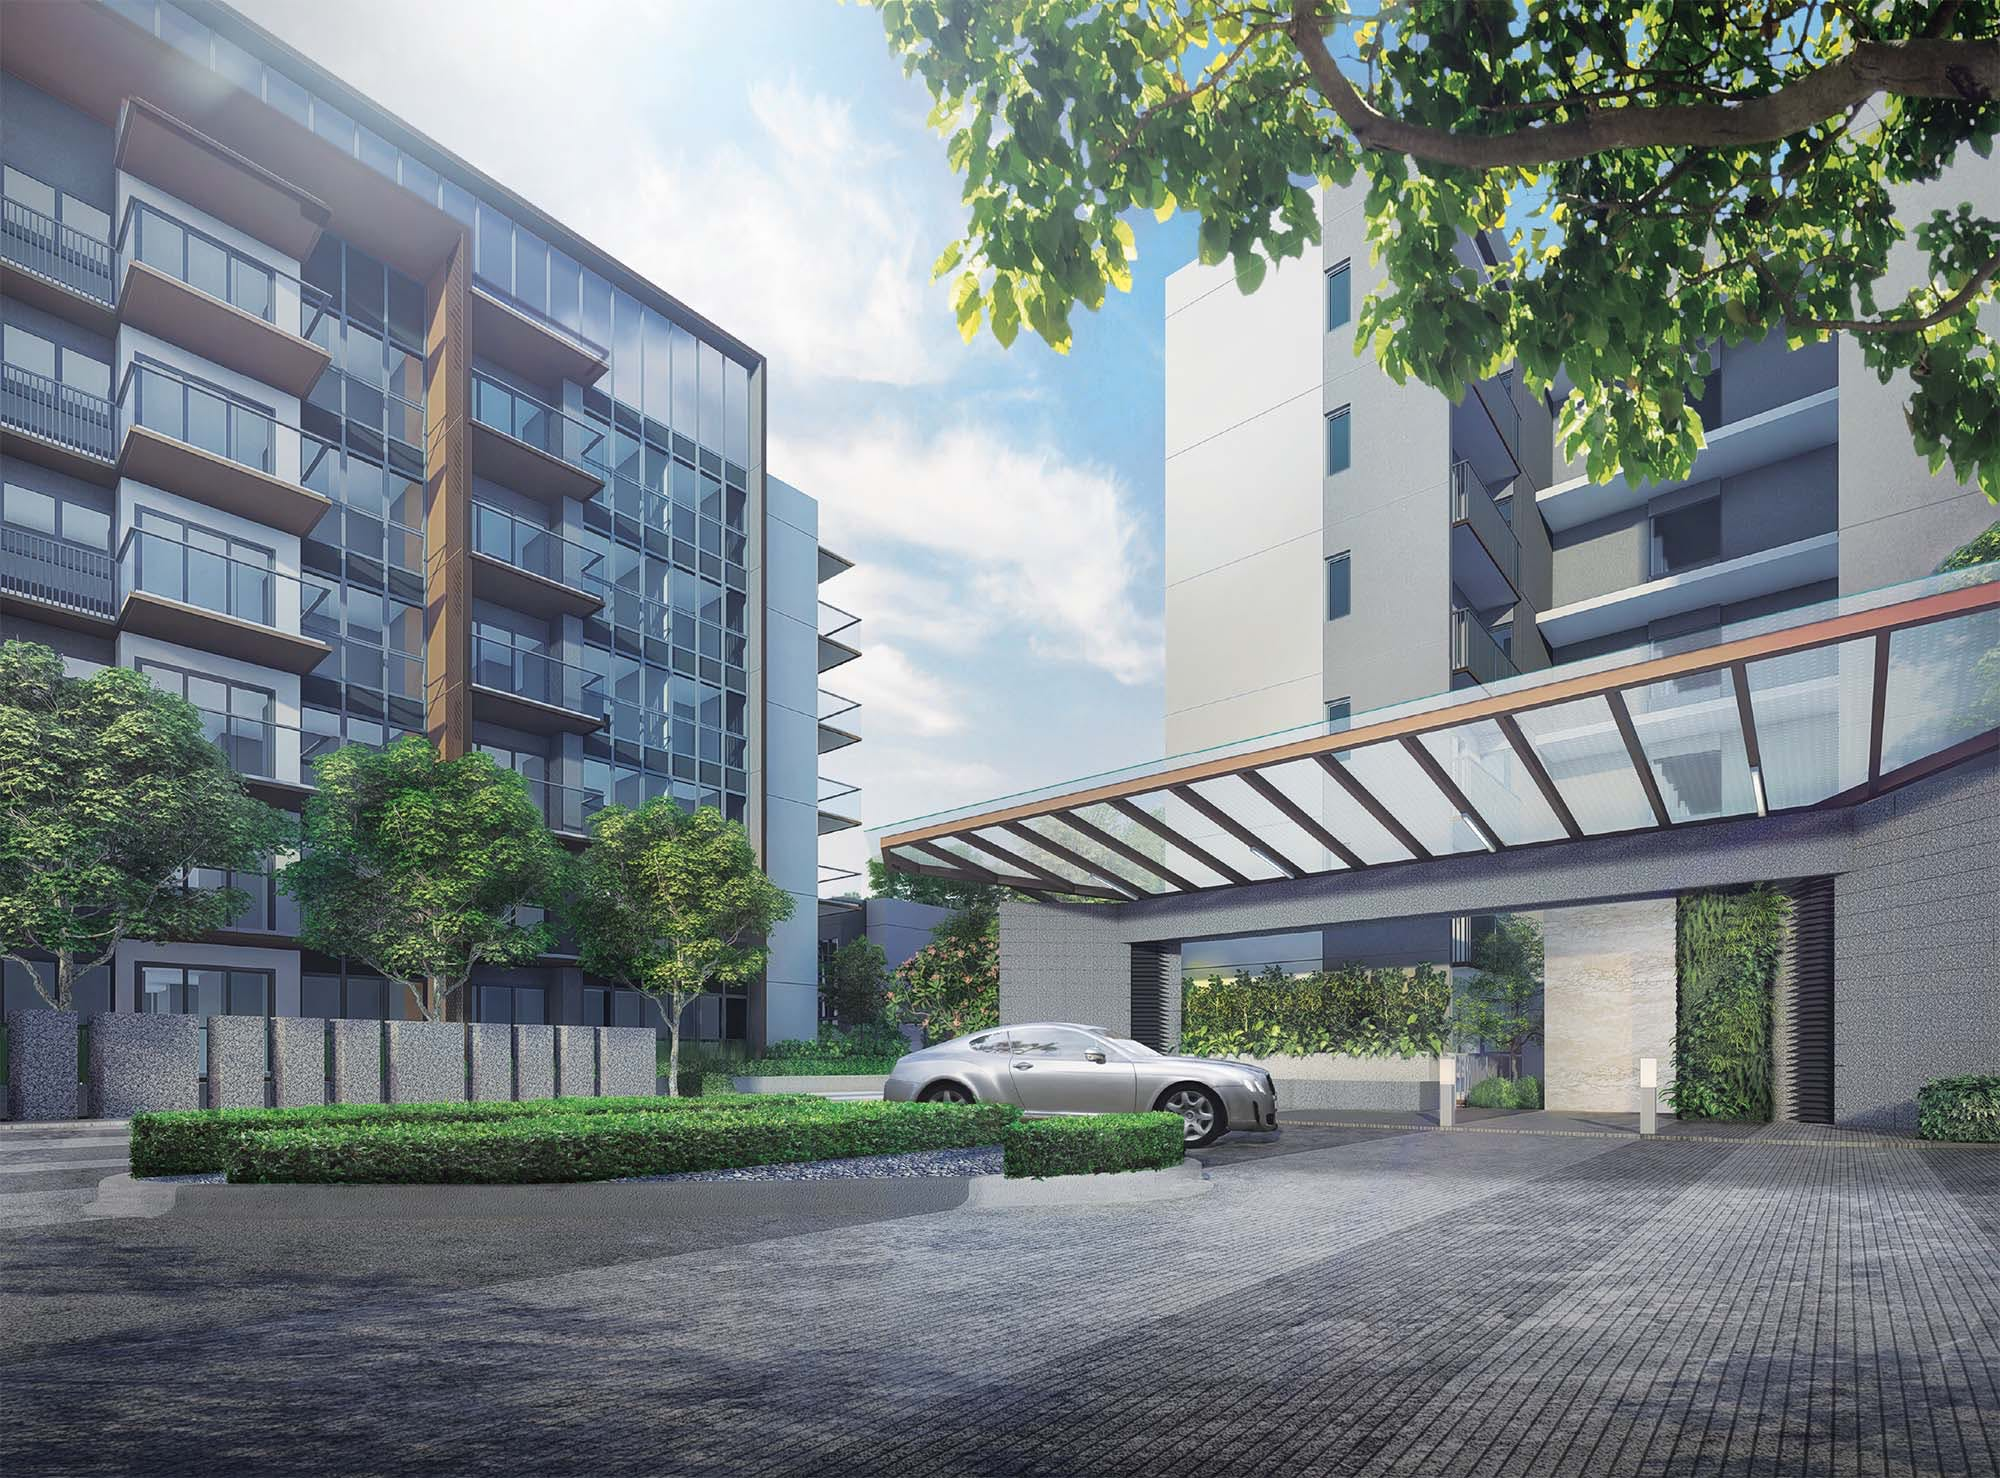 Artists' impression of Fourth Avenue Residences